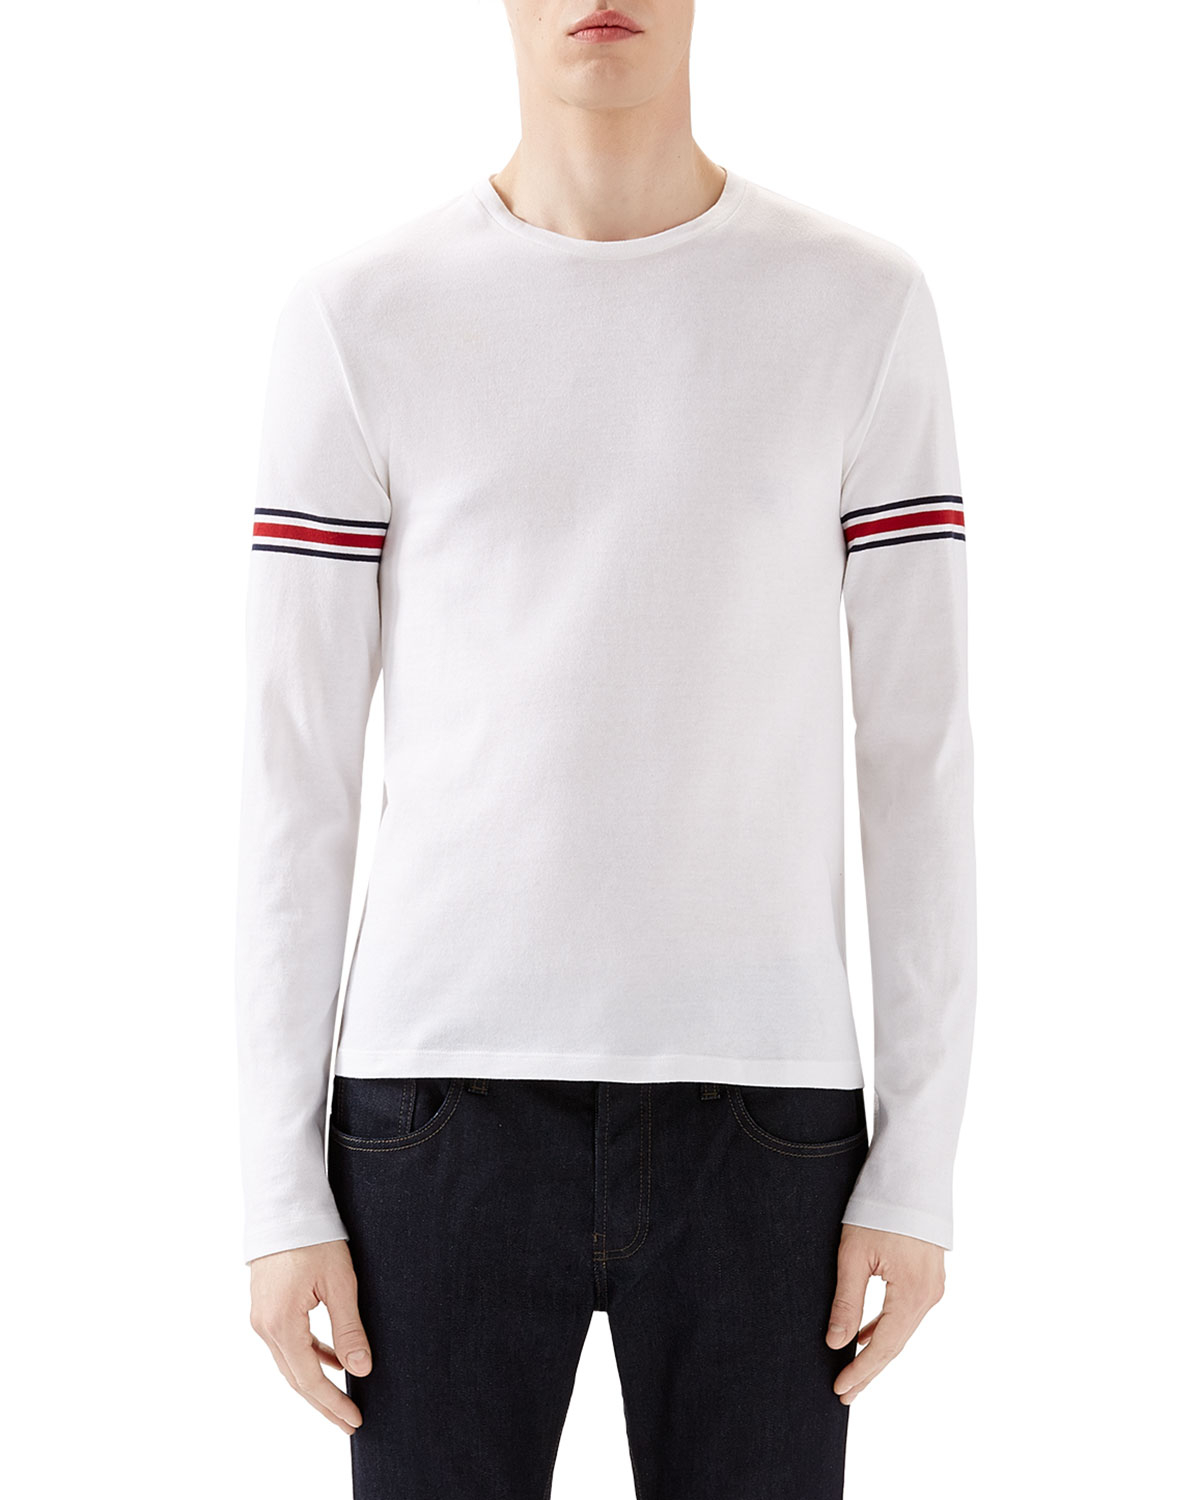 Gucci Arm Band Detailed Cotton Top In White For Men Lyst